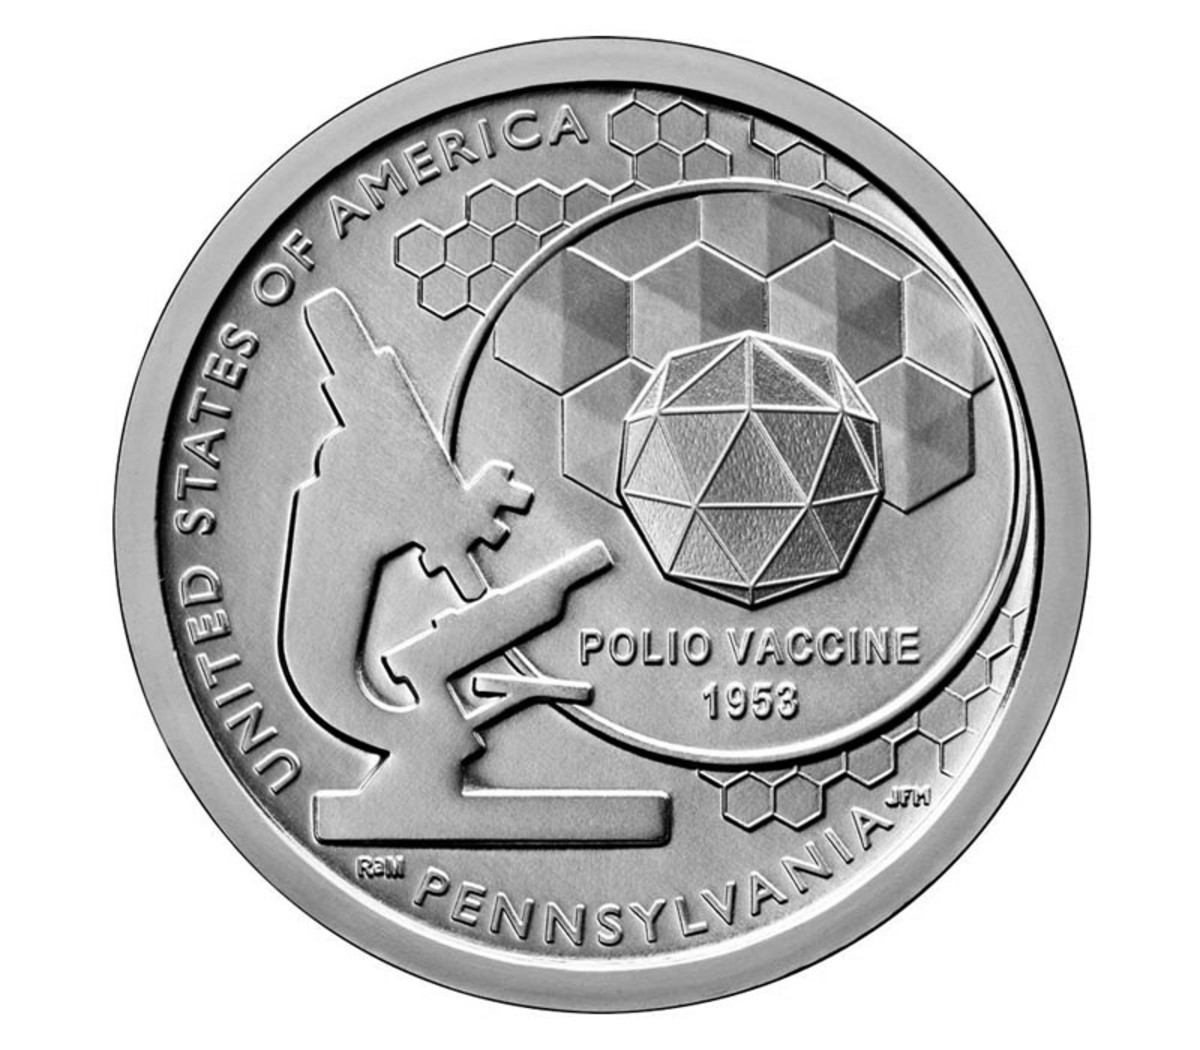 Dr. Jonas Salk and his team developed the polio vaccine. The feat is captured on the Pennsylvania American Innovation $1 coin that becomes available in bags and rolls Oct. 24.